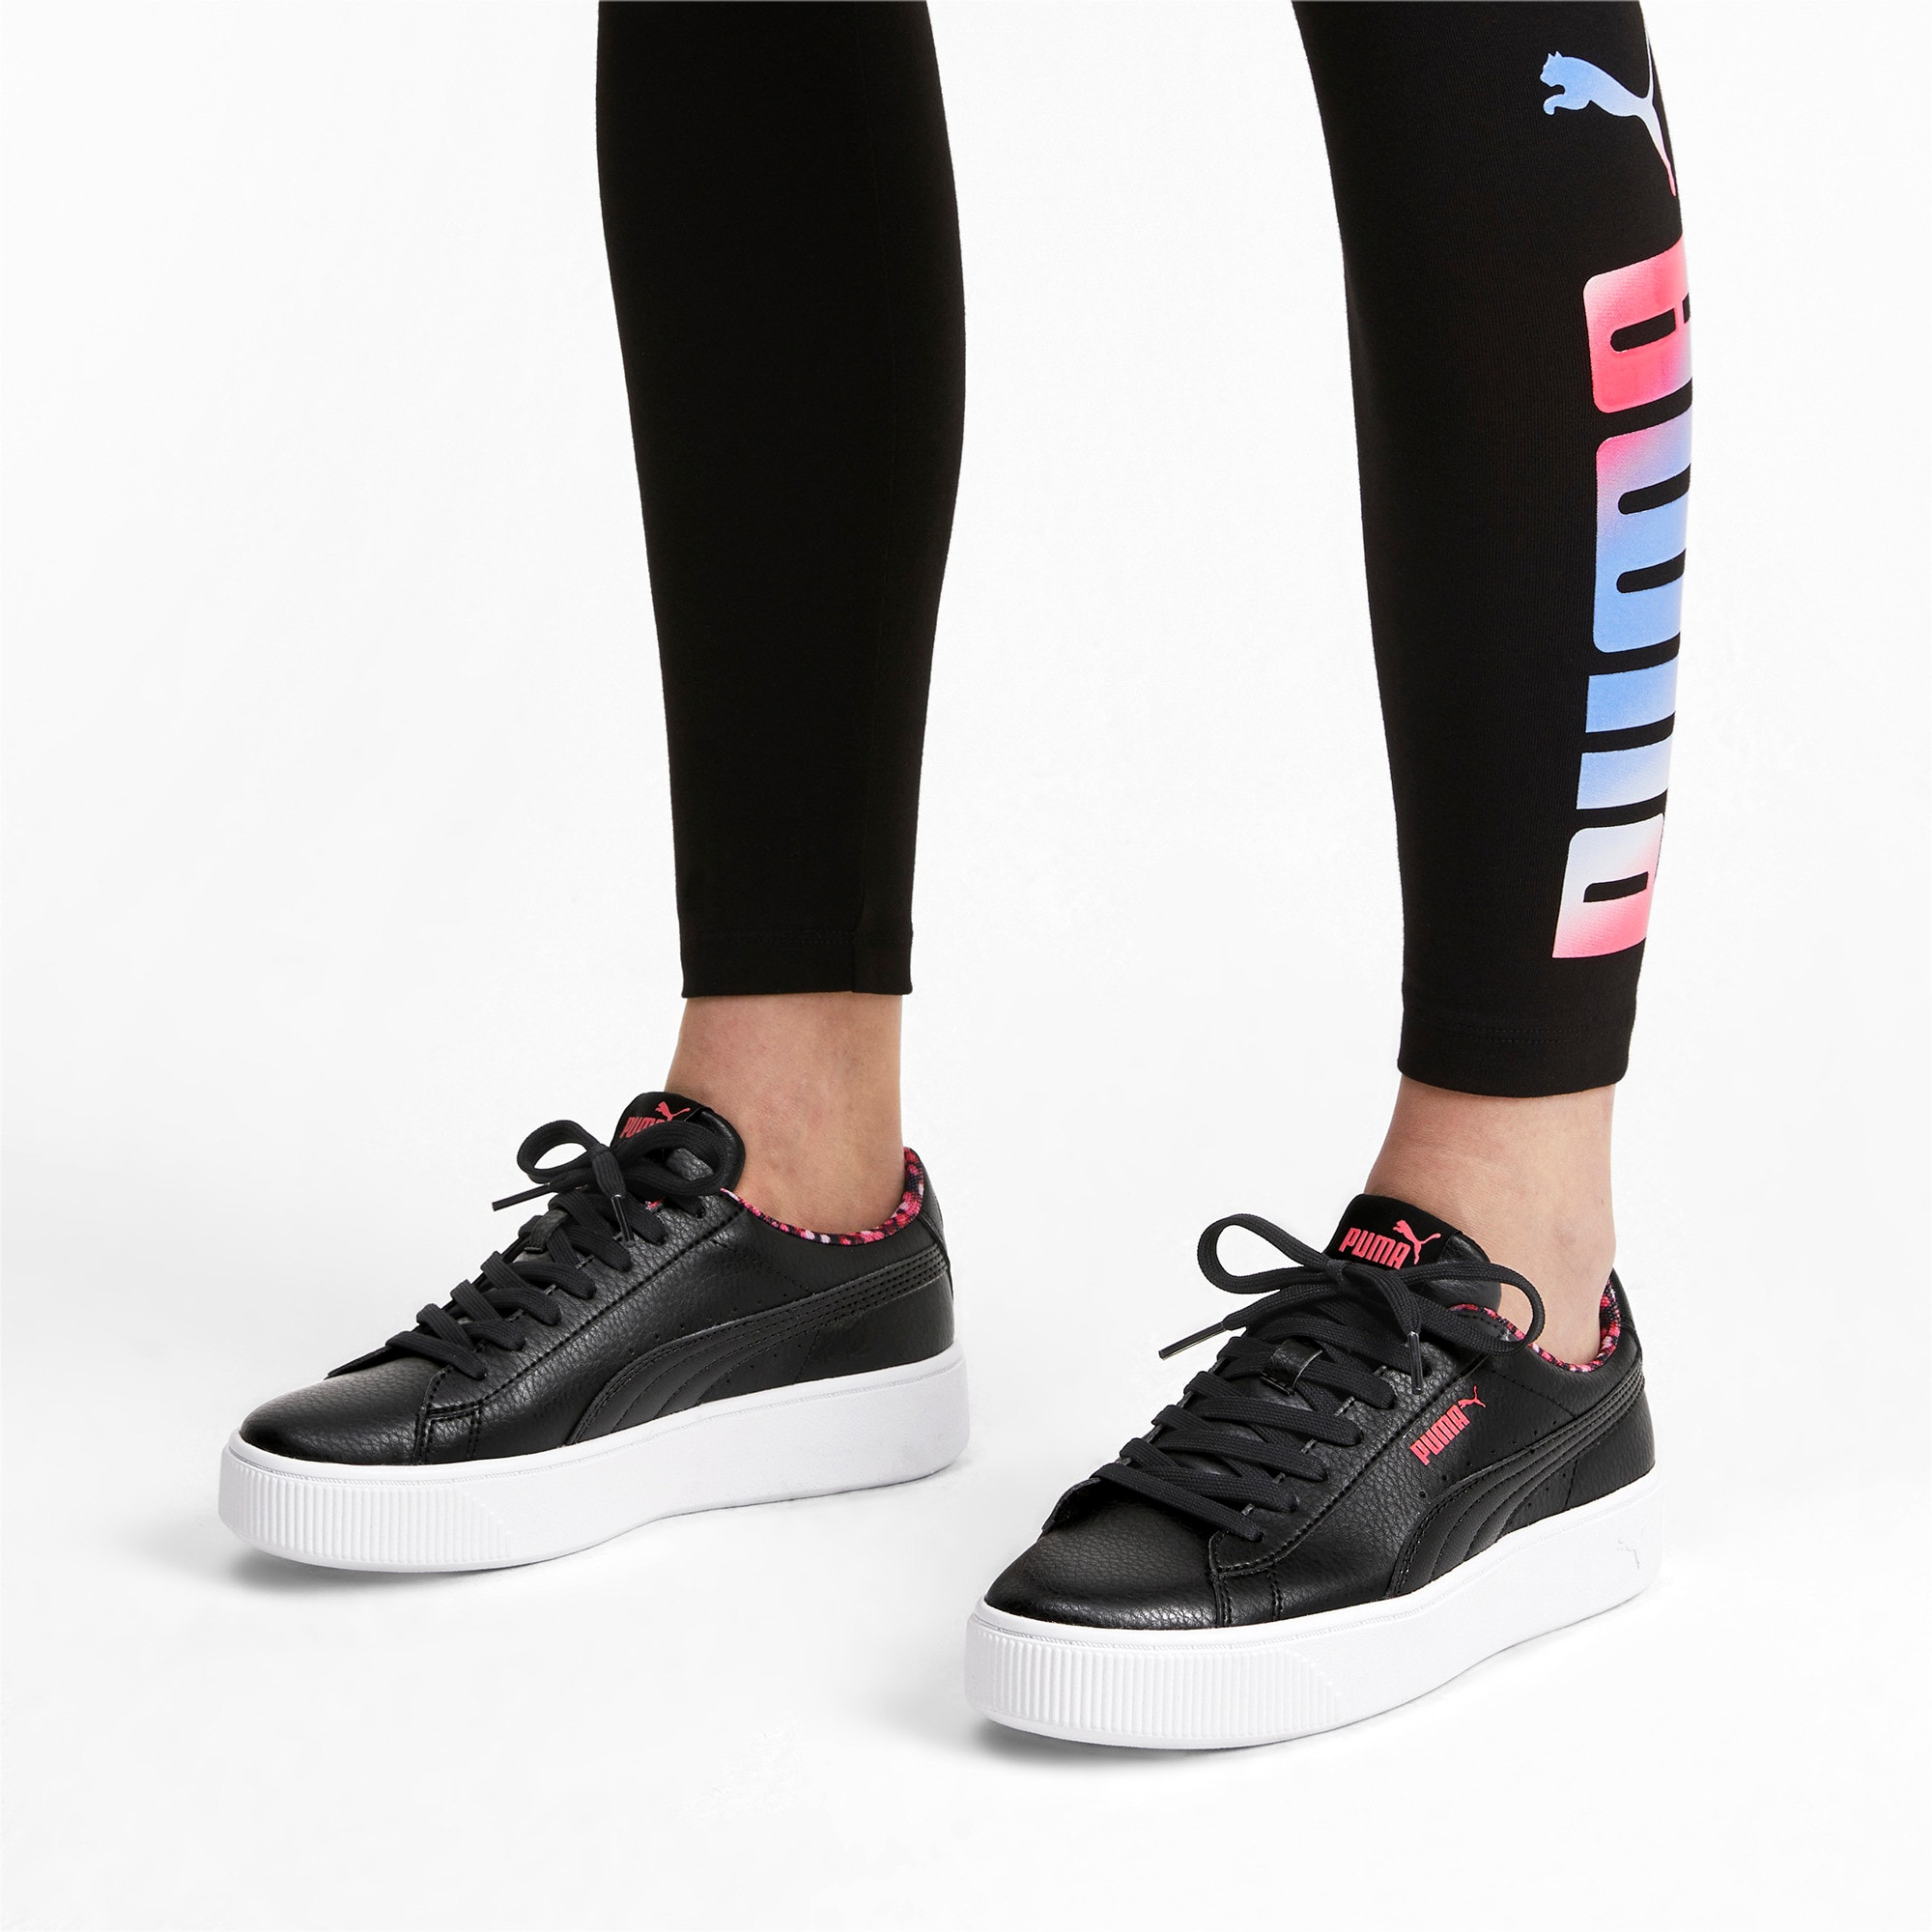 Thumbnail 3 of Vikky Stacked Neon Lights Women's Trainers, Puma Black-Puma Black- Coral, medium-IND